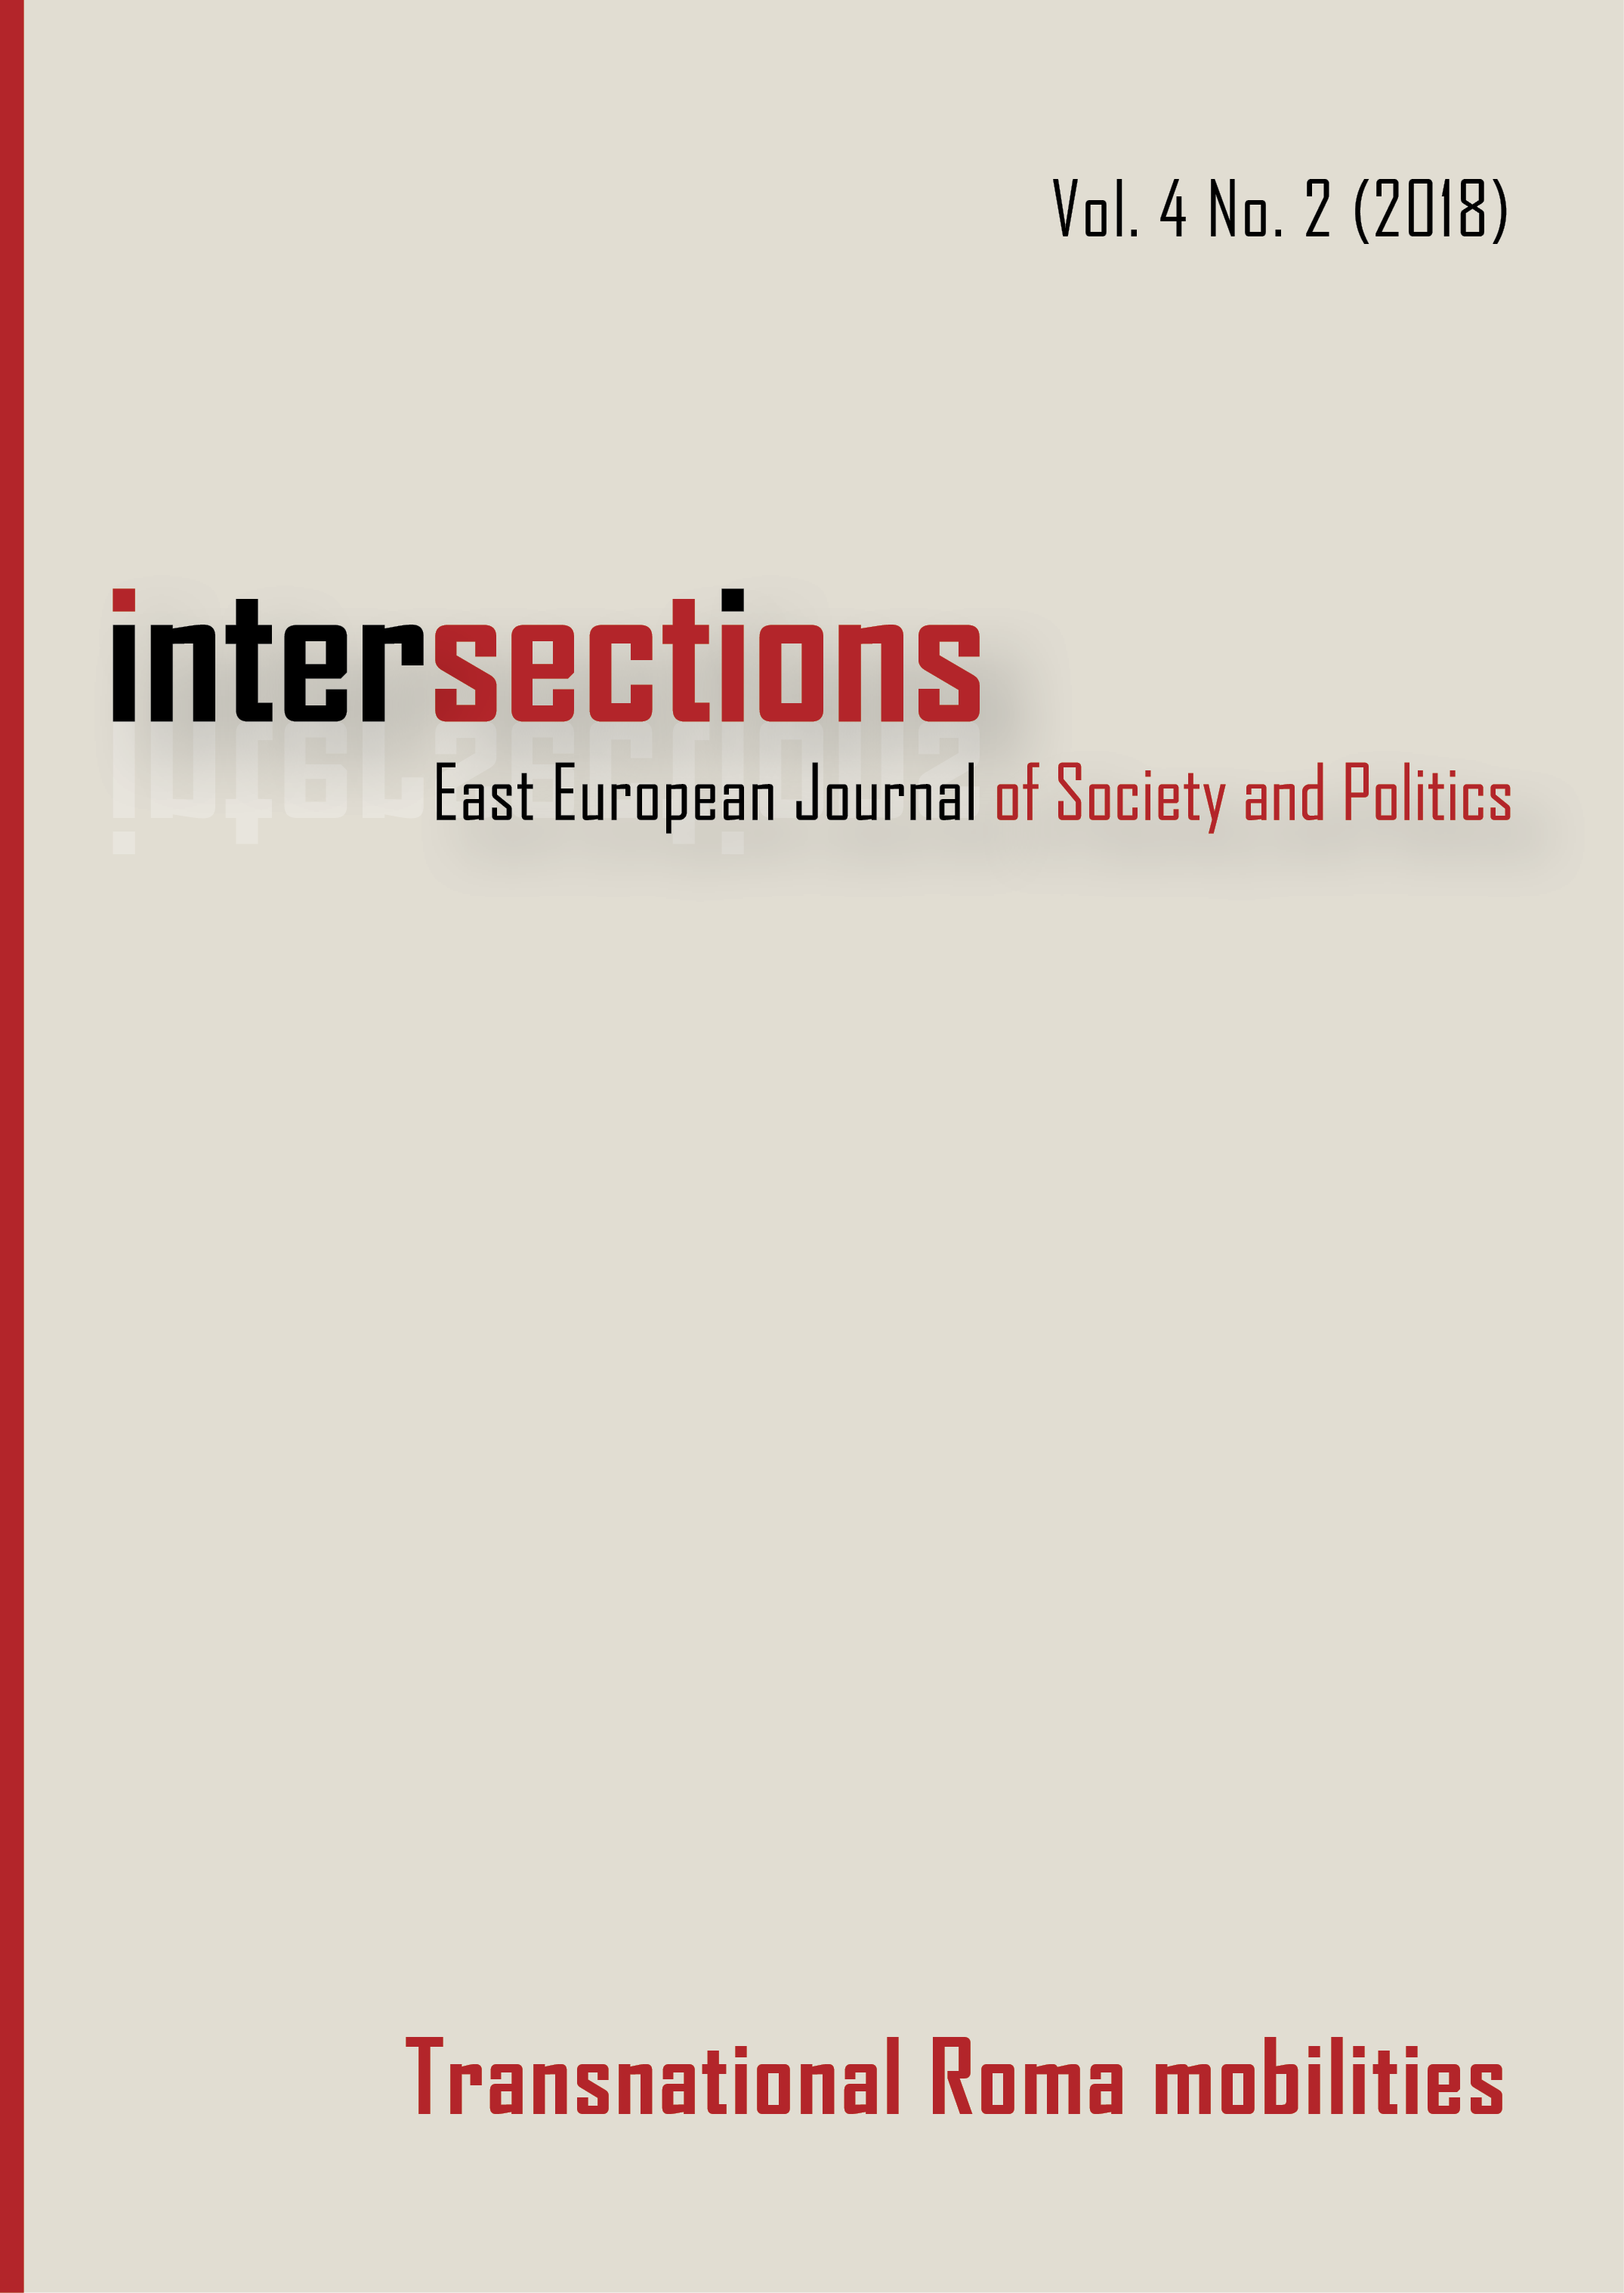 View Vol. 4 No. 2 (2018): Transnational Roma Mobilities